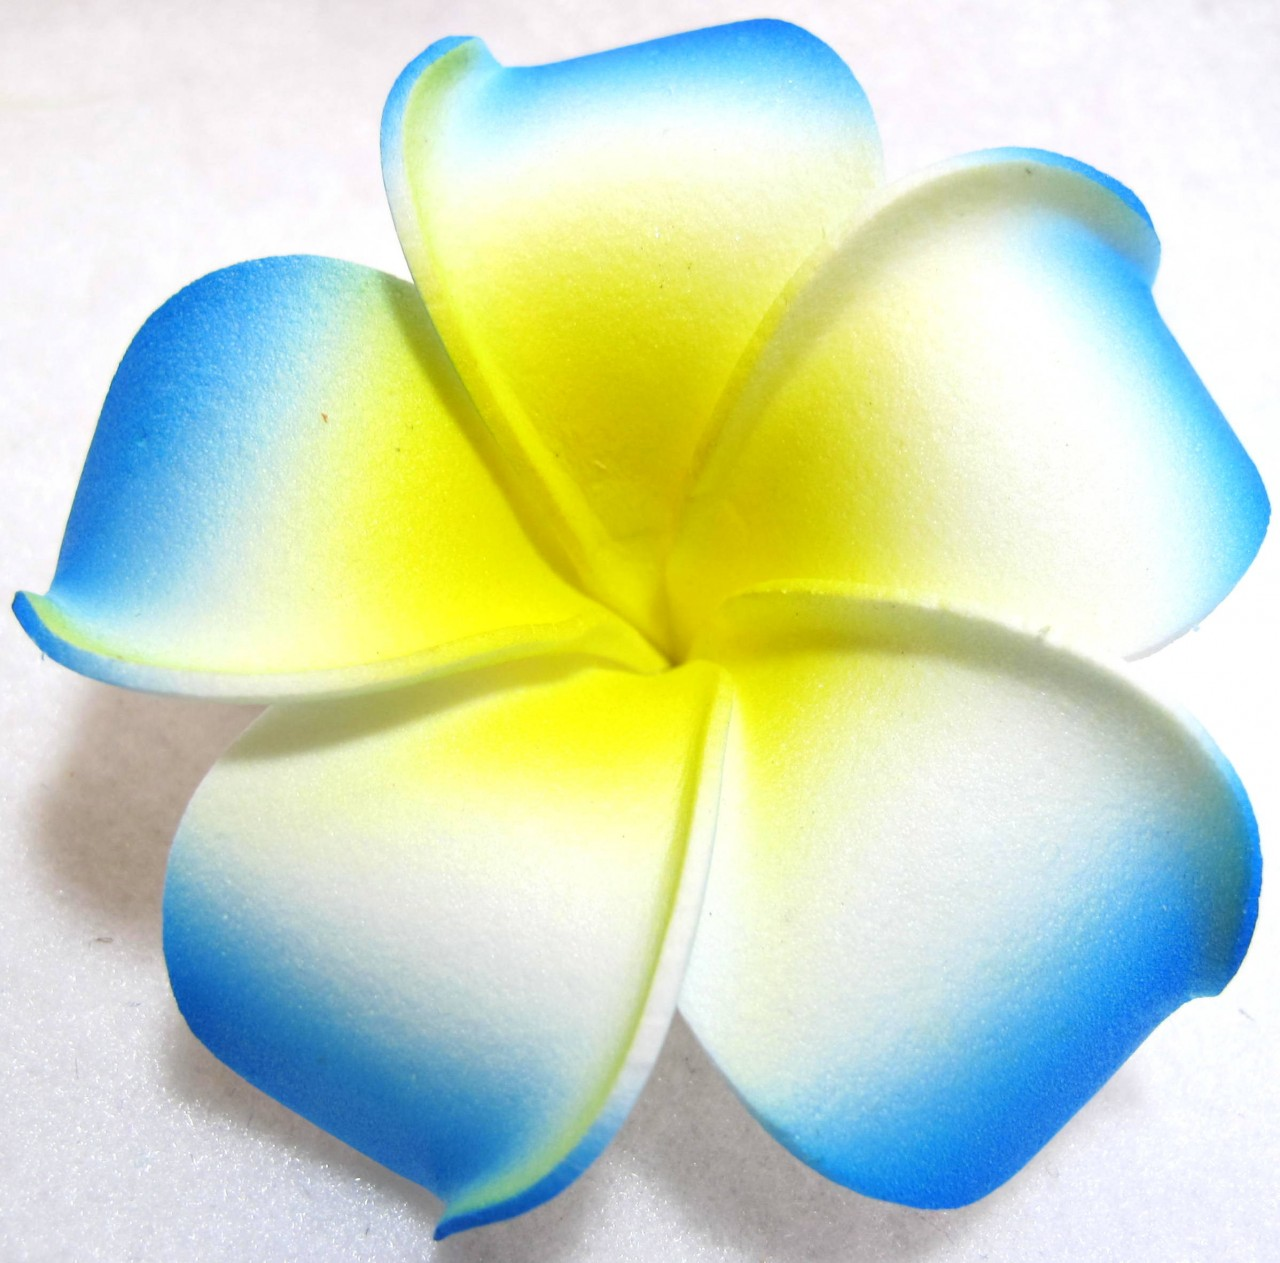 Plumeria Images - Cliparts.co